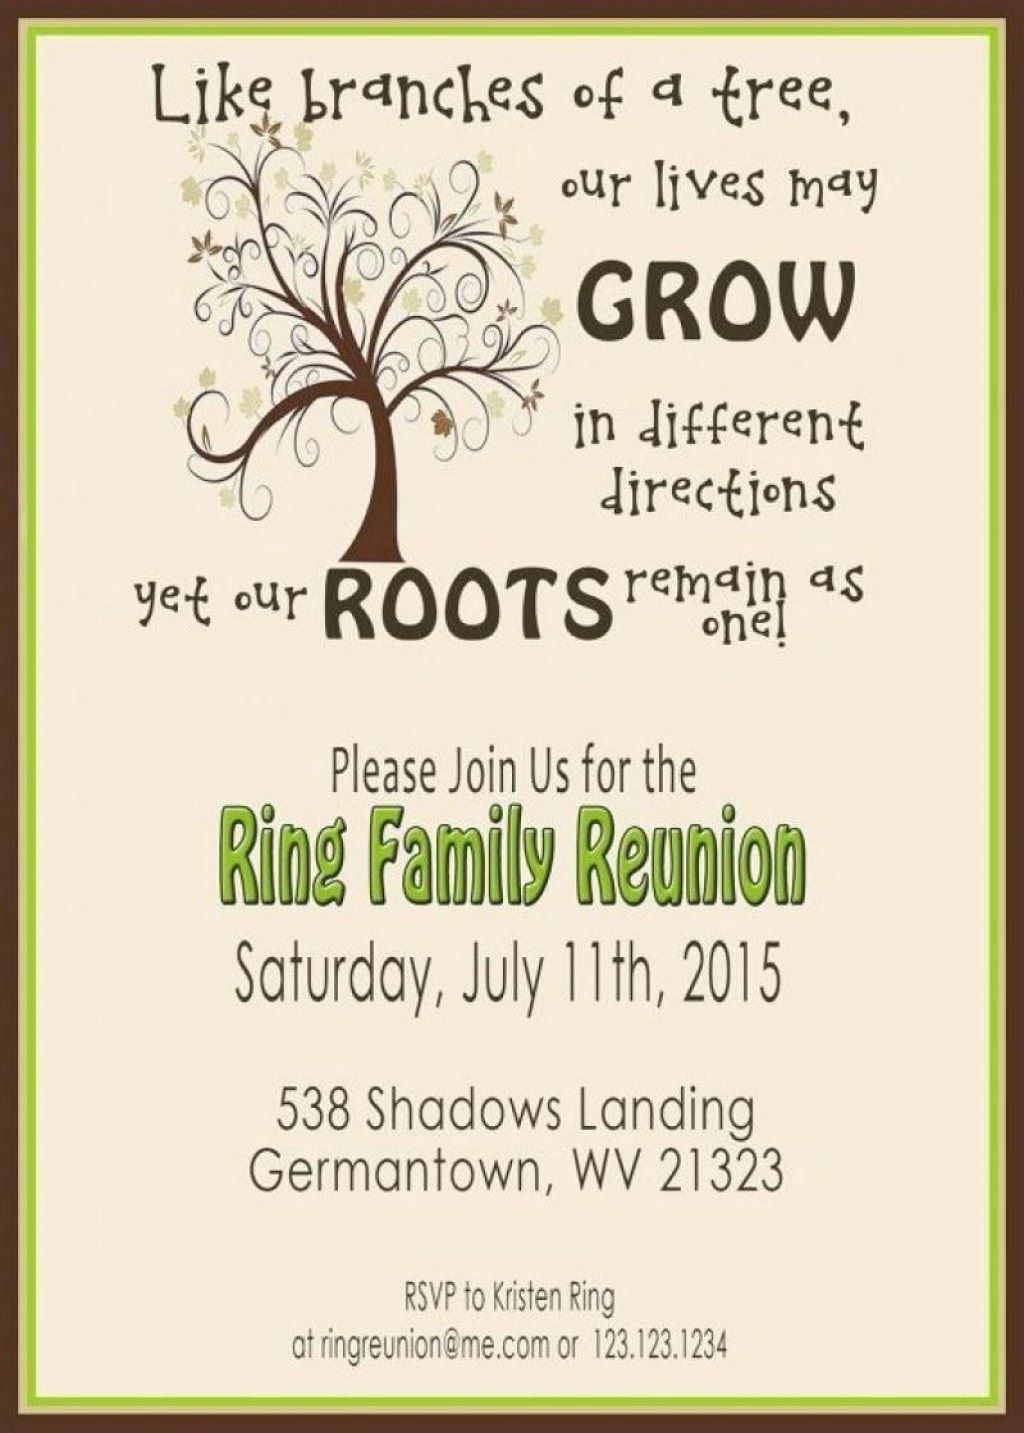 008 Staggering Free Family Reunion Flyer Template Word Concept Full